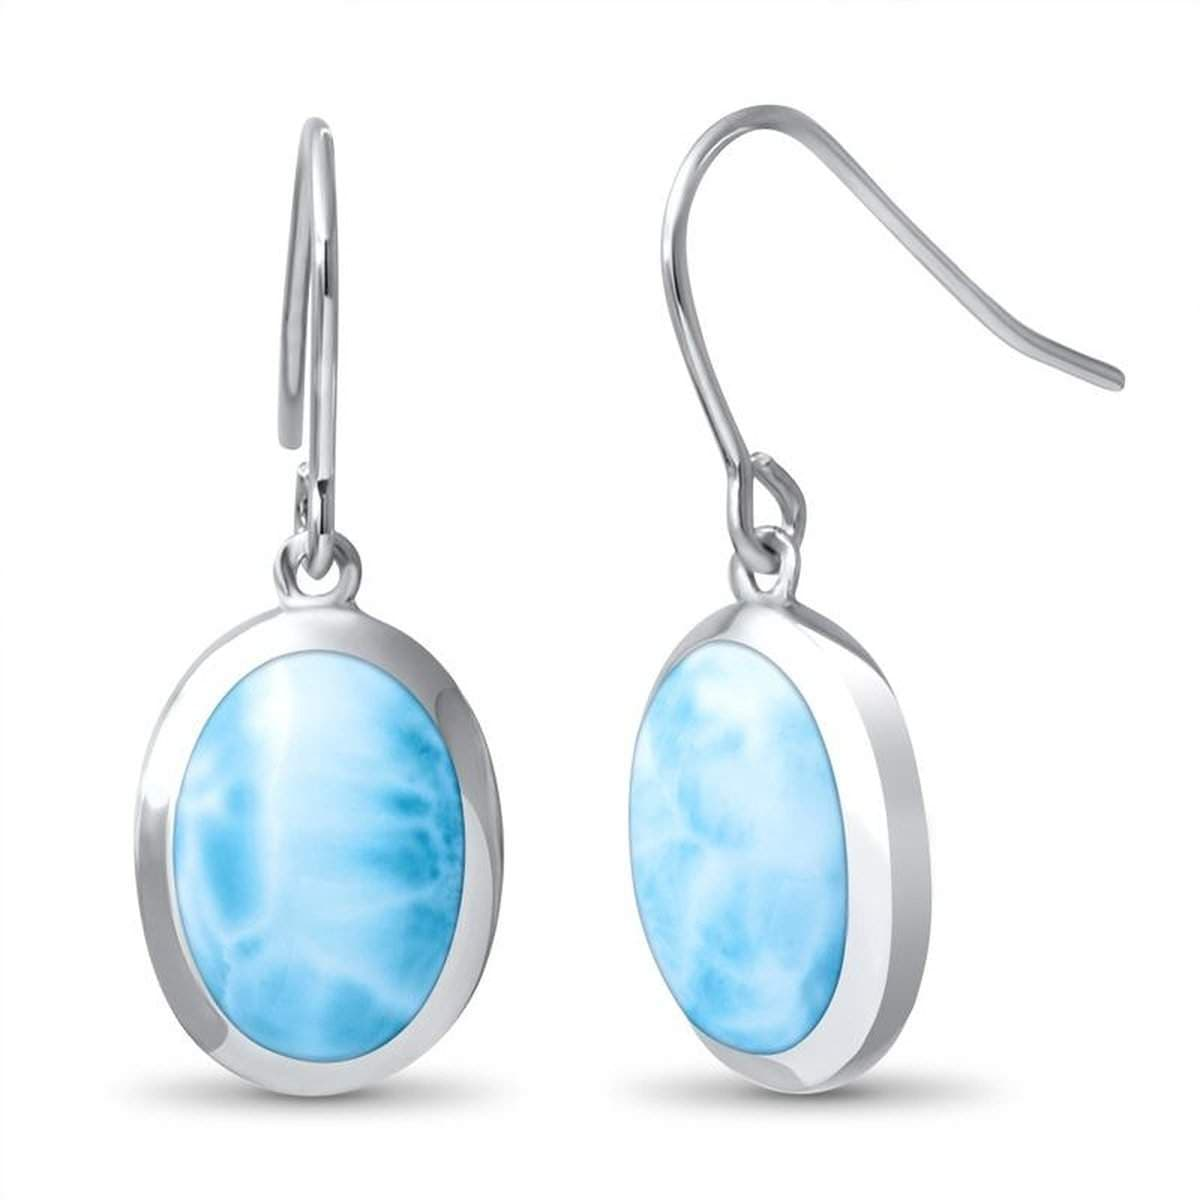 Oval Dangle Earrings - Ebasi04-00-Marahlago Larimar-Renee Taylor Gallery